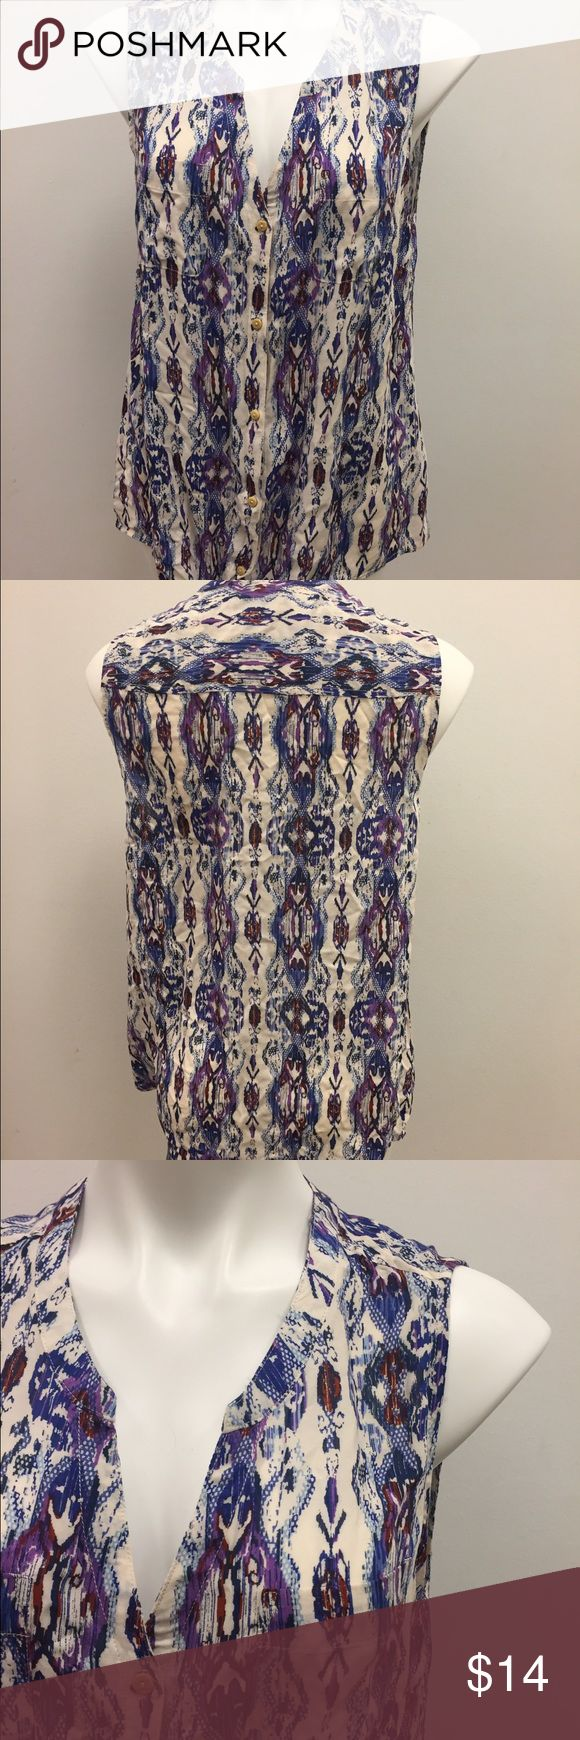 New with Tags! Tribal print button down Top Cute tribal print button up Sleeveless Blouse in a size large from dressbarn. It is brand new with tags attached. Blues and purples patterned with cream background. #tribalprint #new #nwt #print #dressbarn Dress Barn Tops Blouses